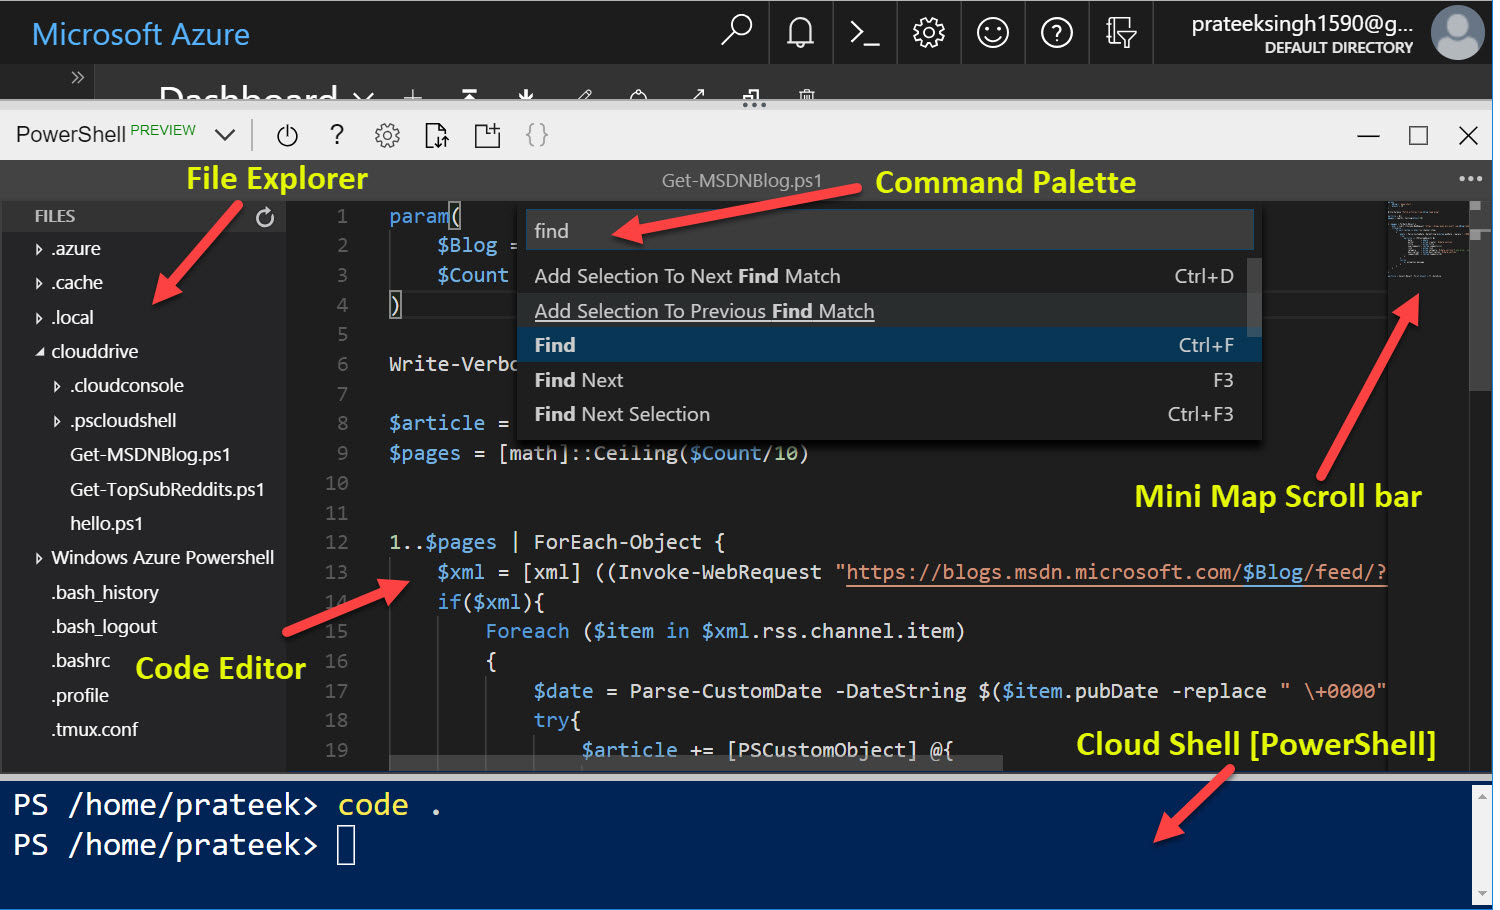 Monaco Editor - Full Code Editor experience in Azure Cloud Shell